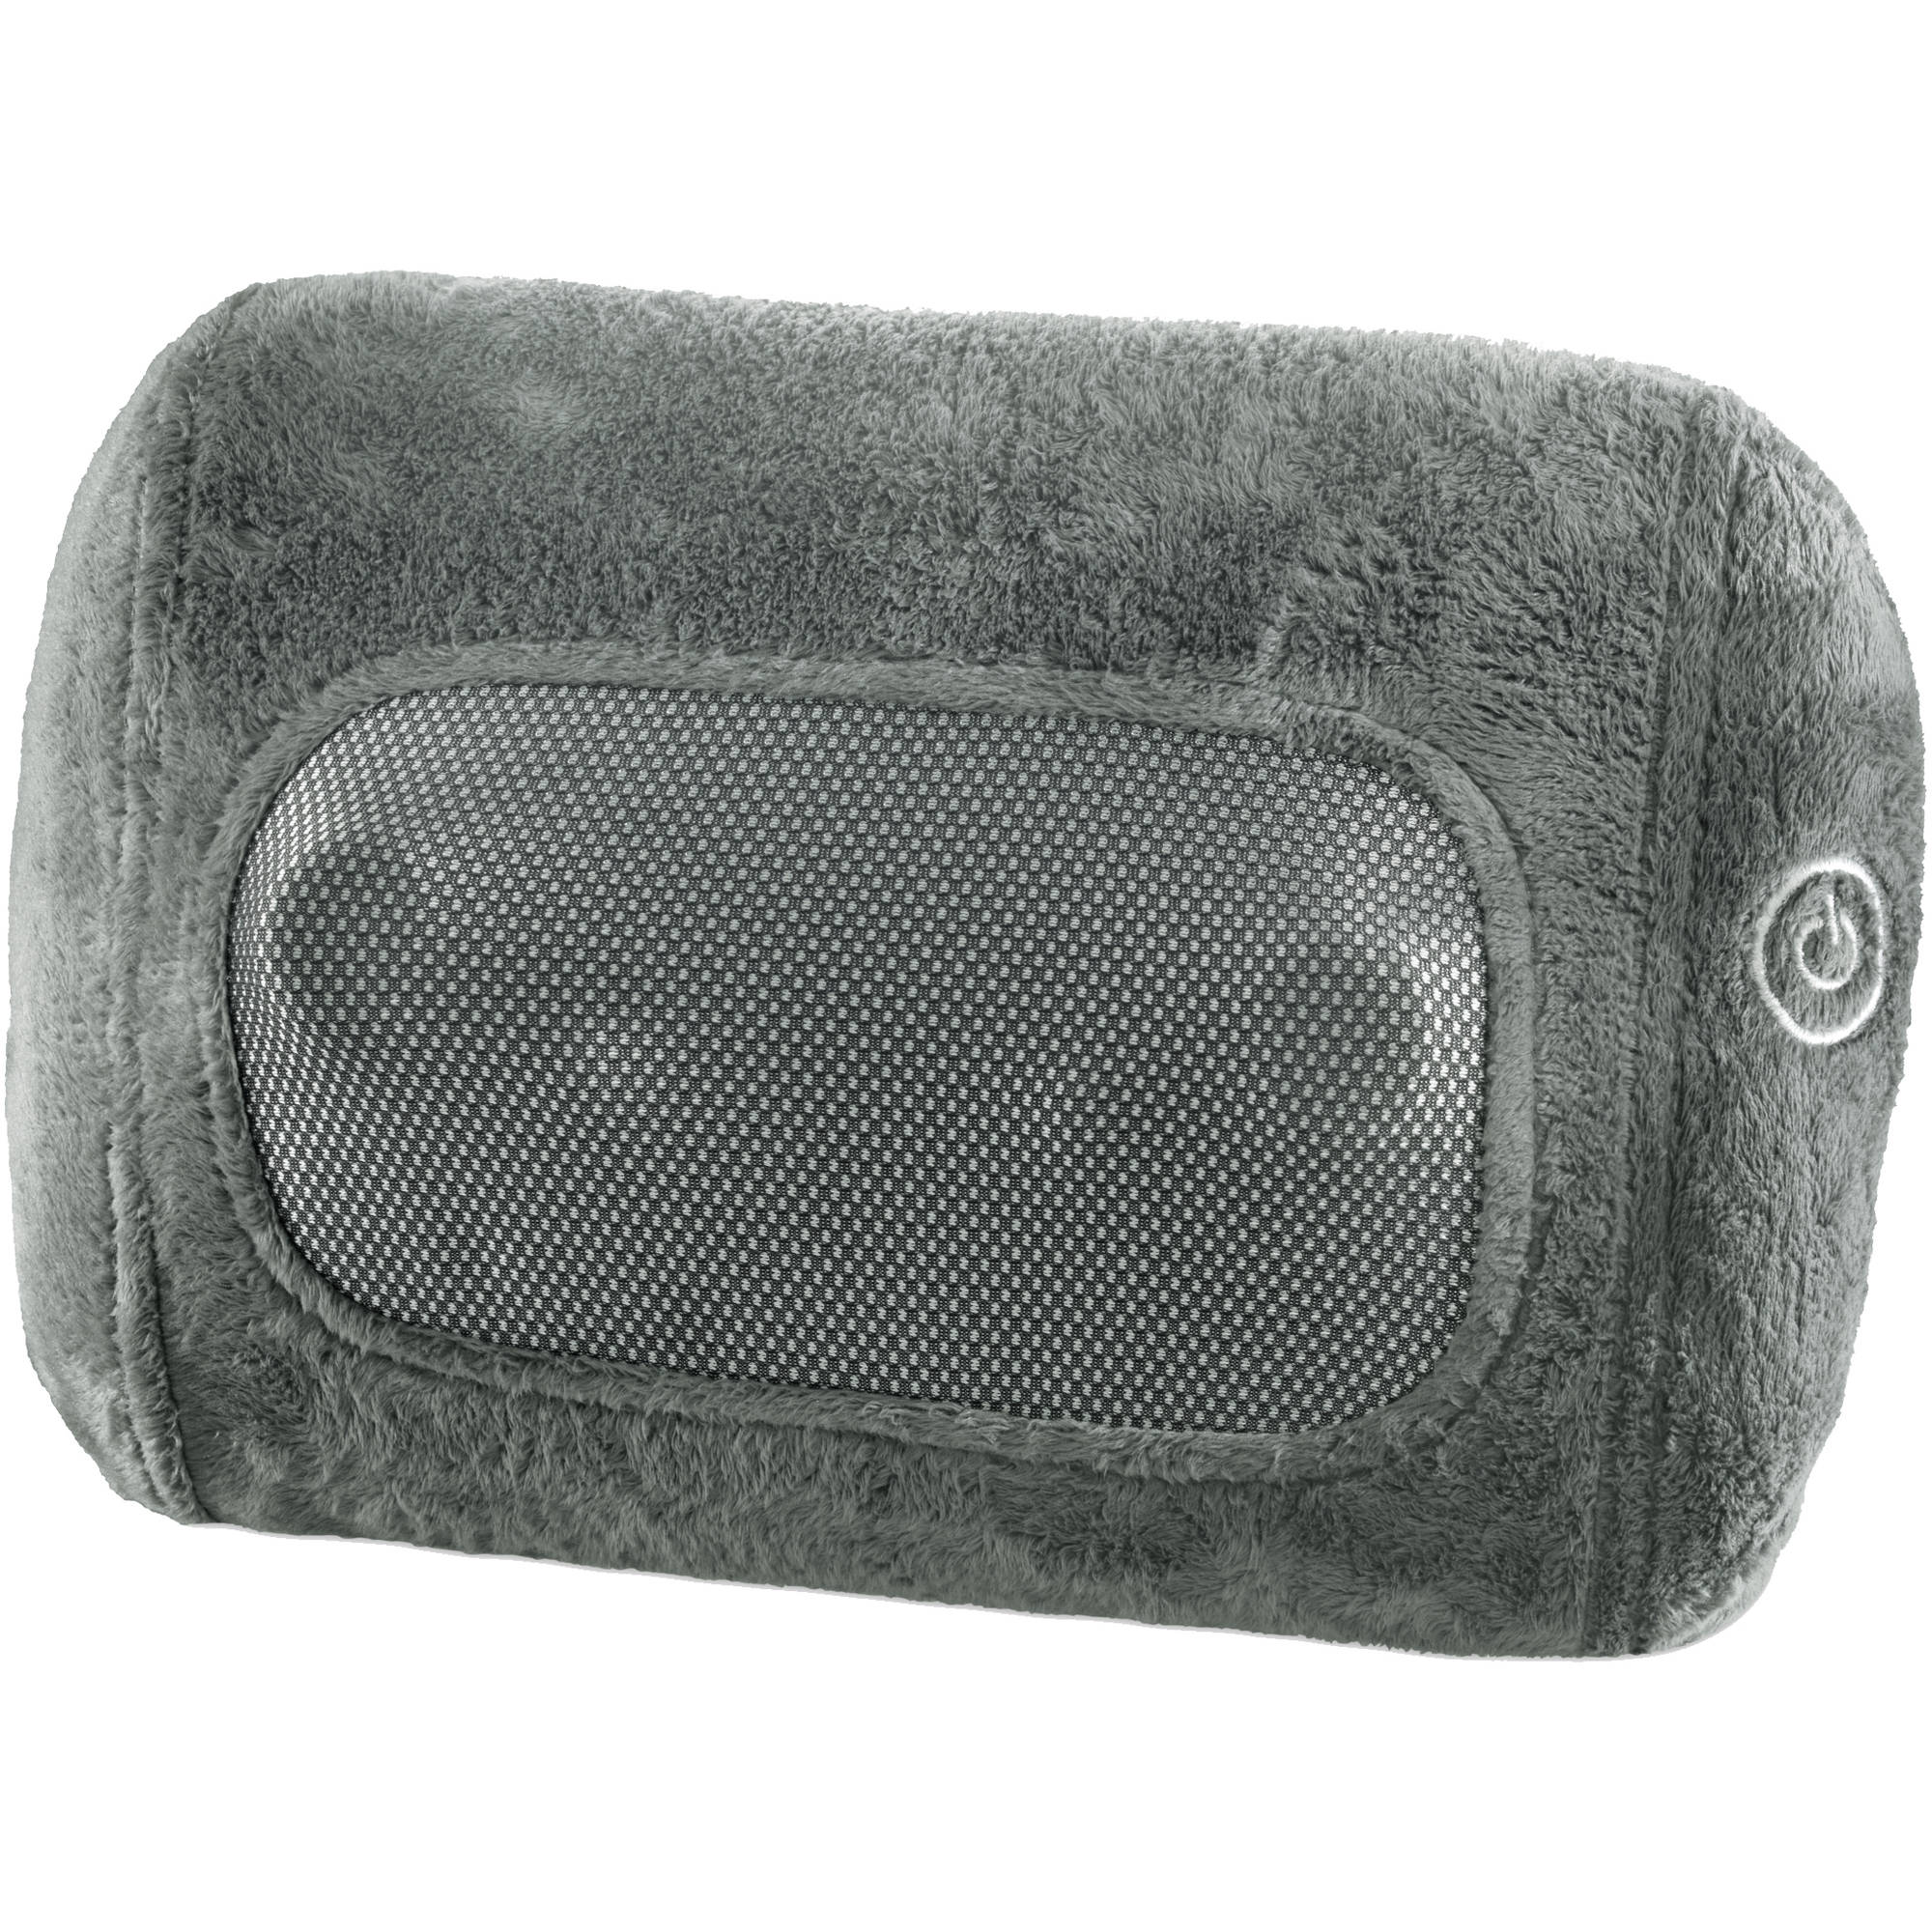 HoMedics Thera P Shiatsu Massage Pillow Walmart